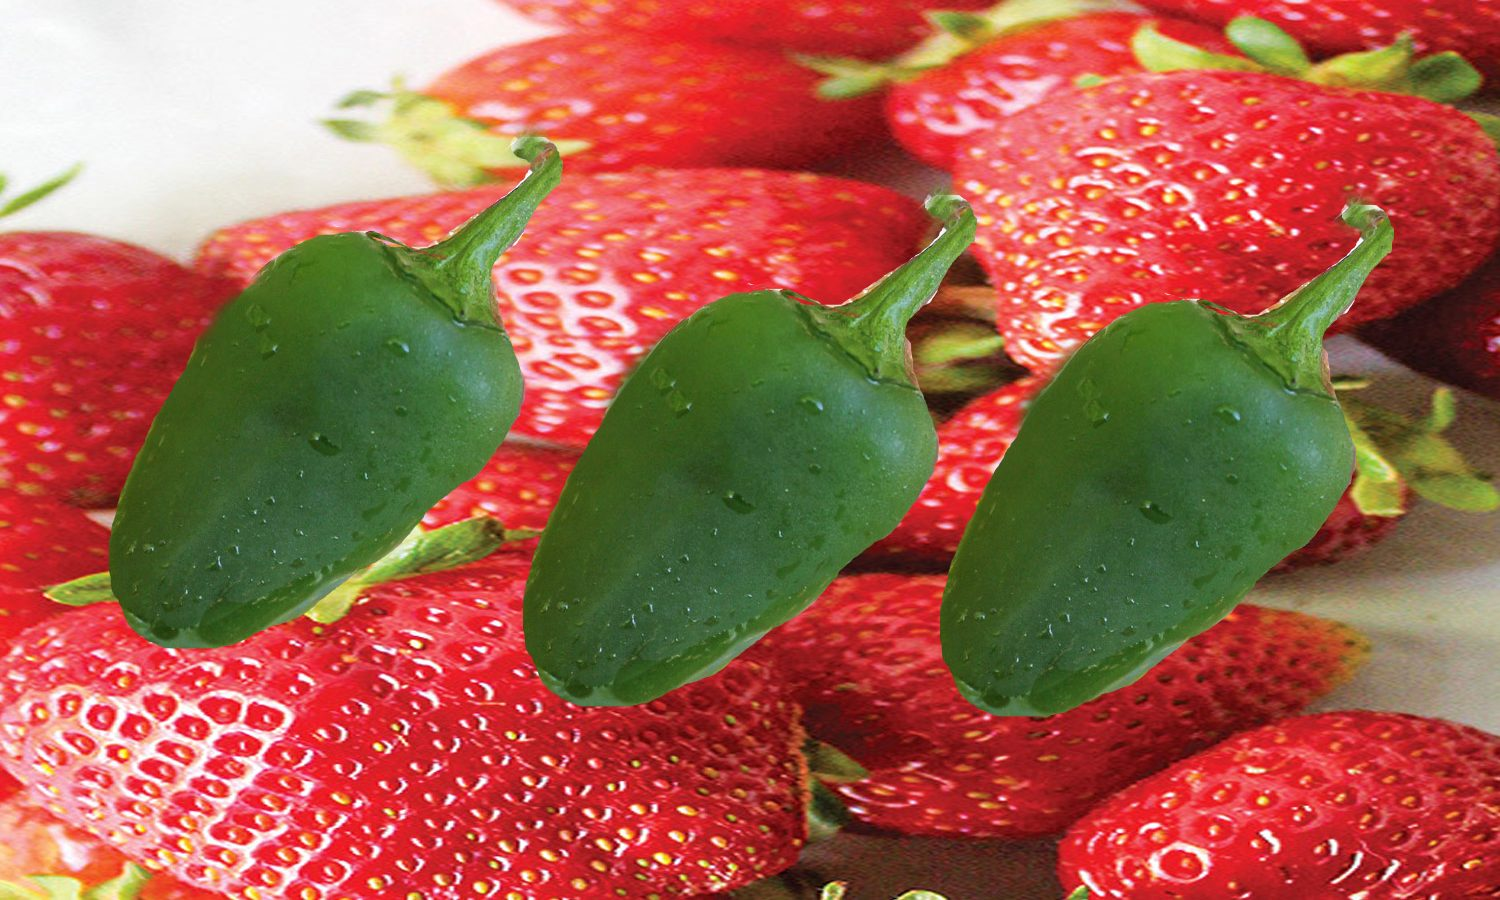 Jalapeno Peppers superimposed over fresh strawberries